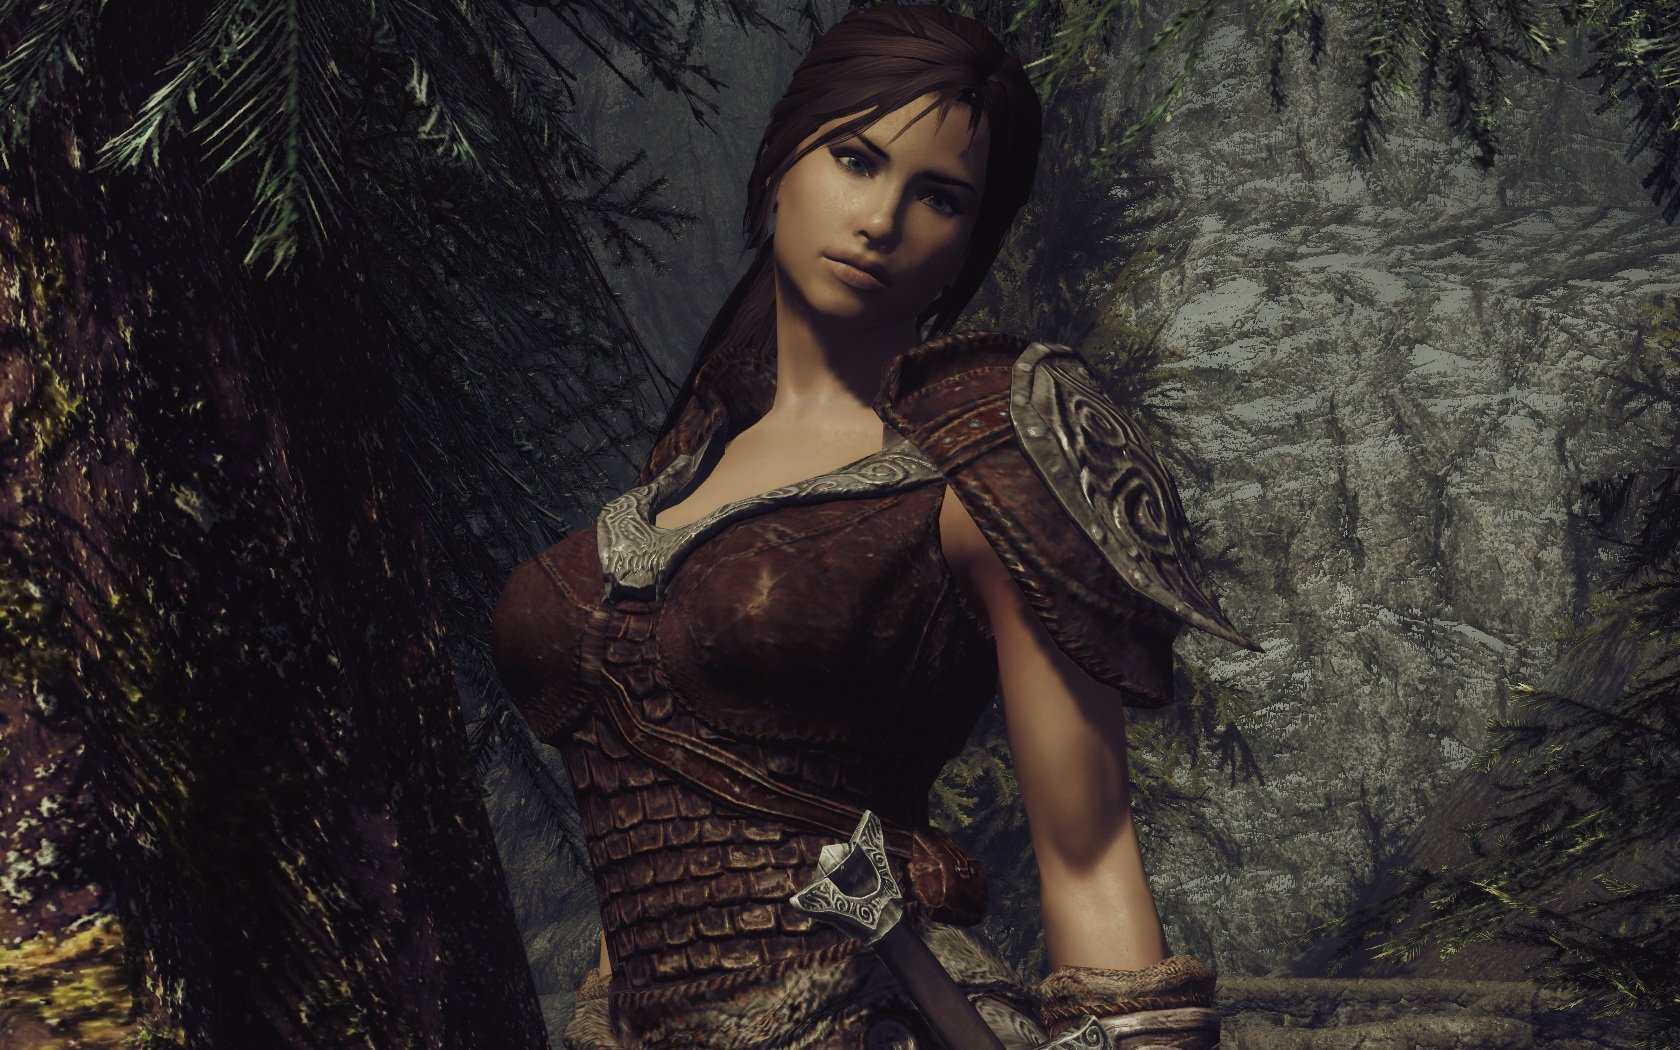 Skyrim female character mods hentai lady